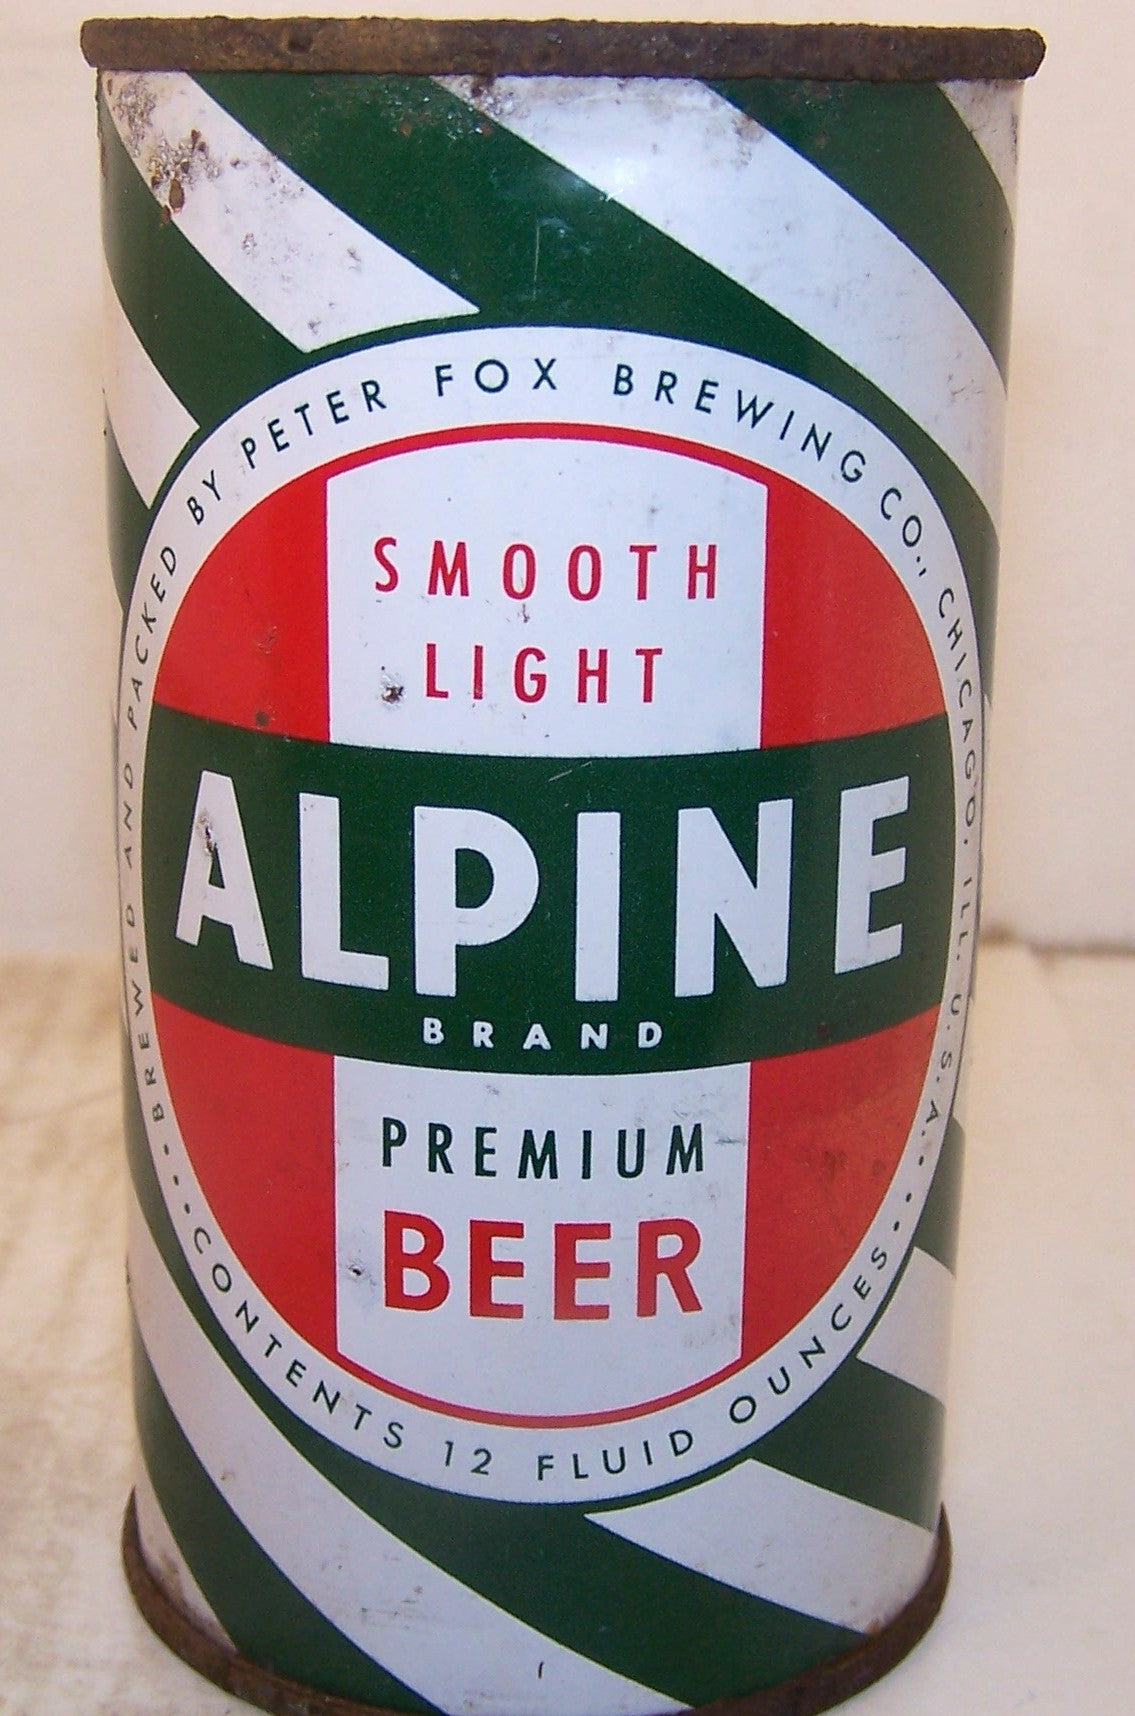 Alpine Premium Beer, USBC 30-2, Grade 1-/2+ Sold on 8/20/15